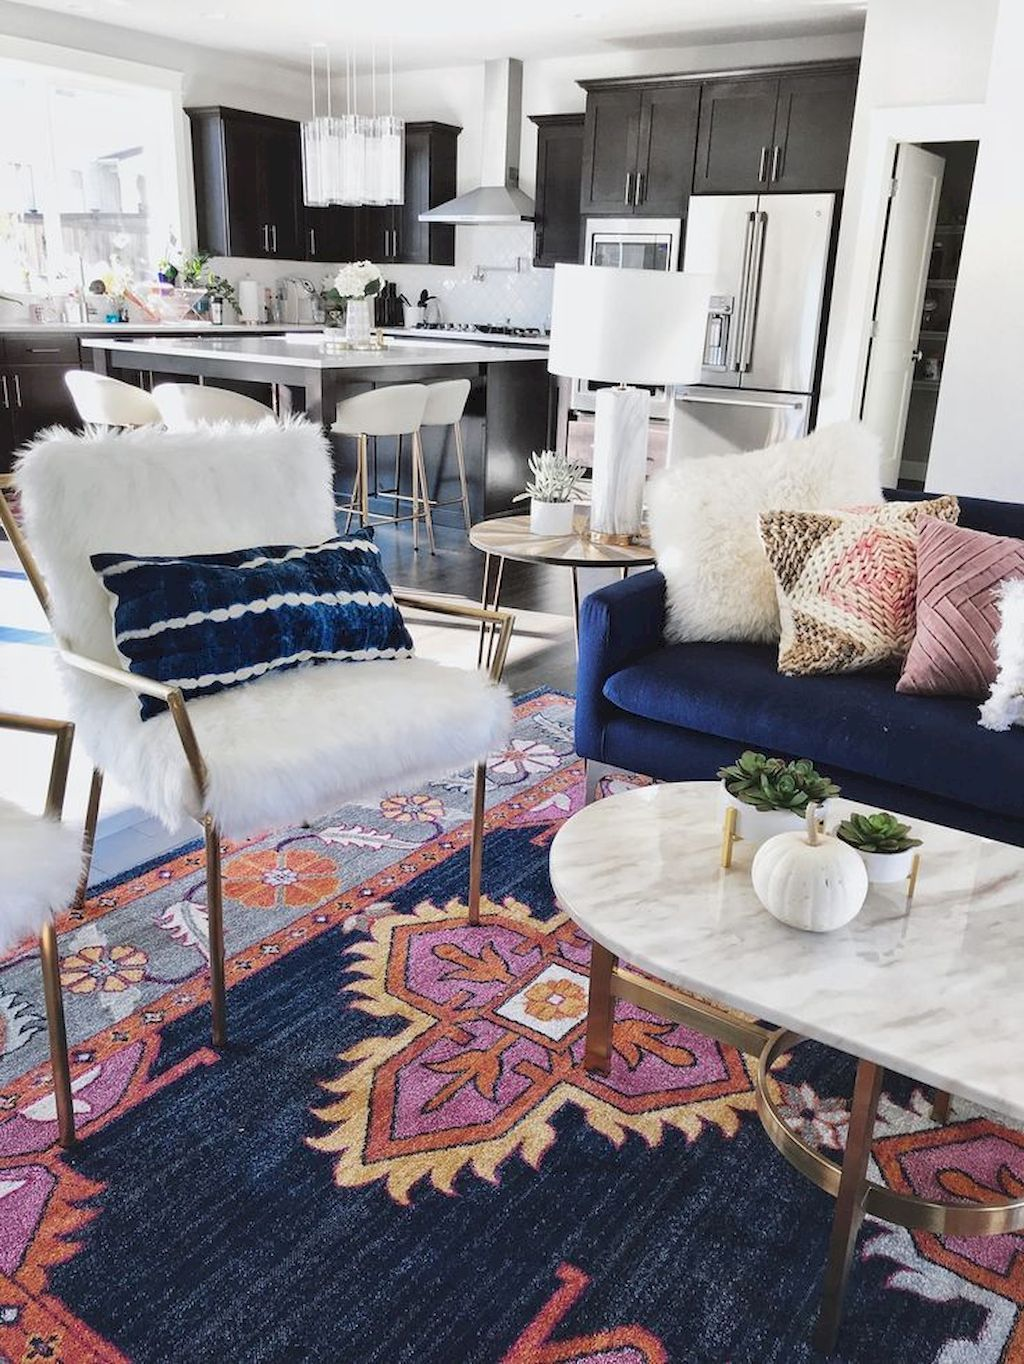 Awesome 95 Modern Bohemian Living Room Decor Ideas Https Homespecially Com 95 Modern Boh Blue Couch Living Room Modern Bohemian Living Room Blue Couch Living